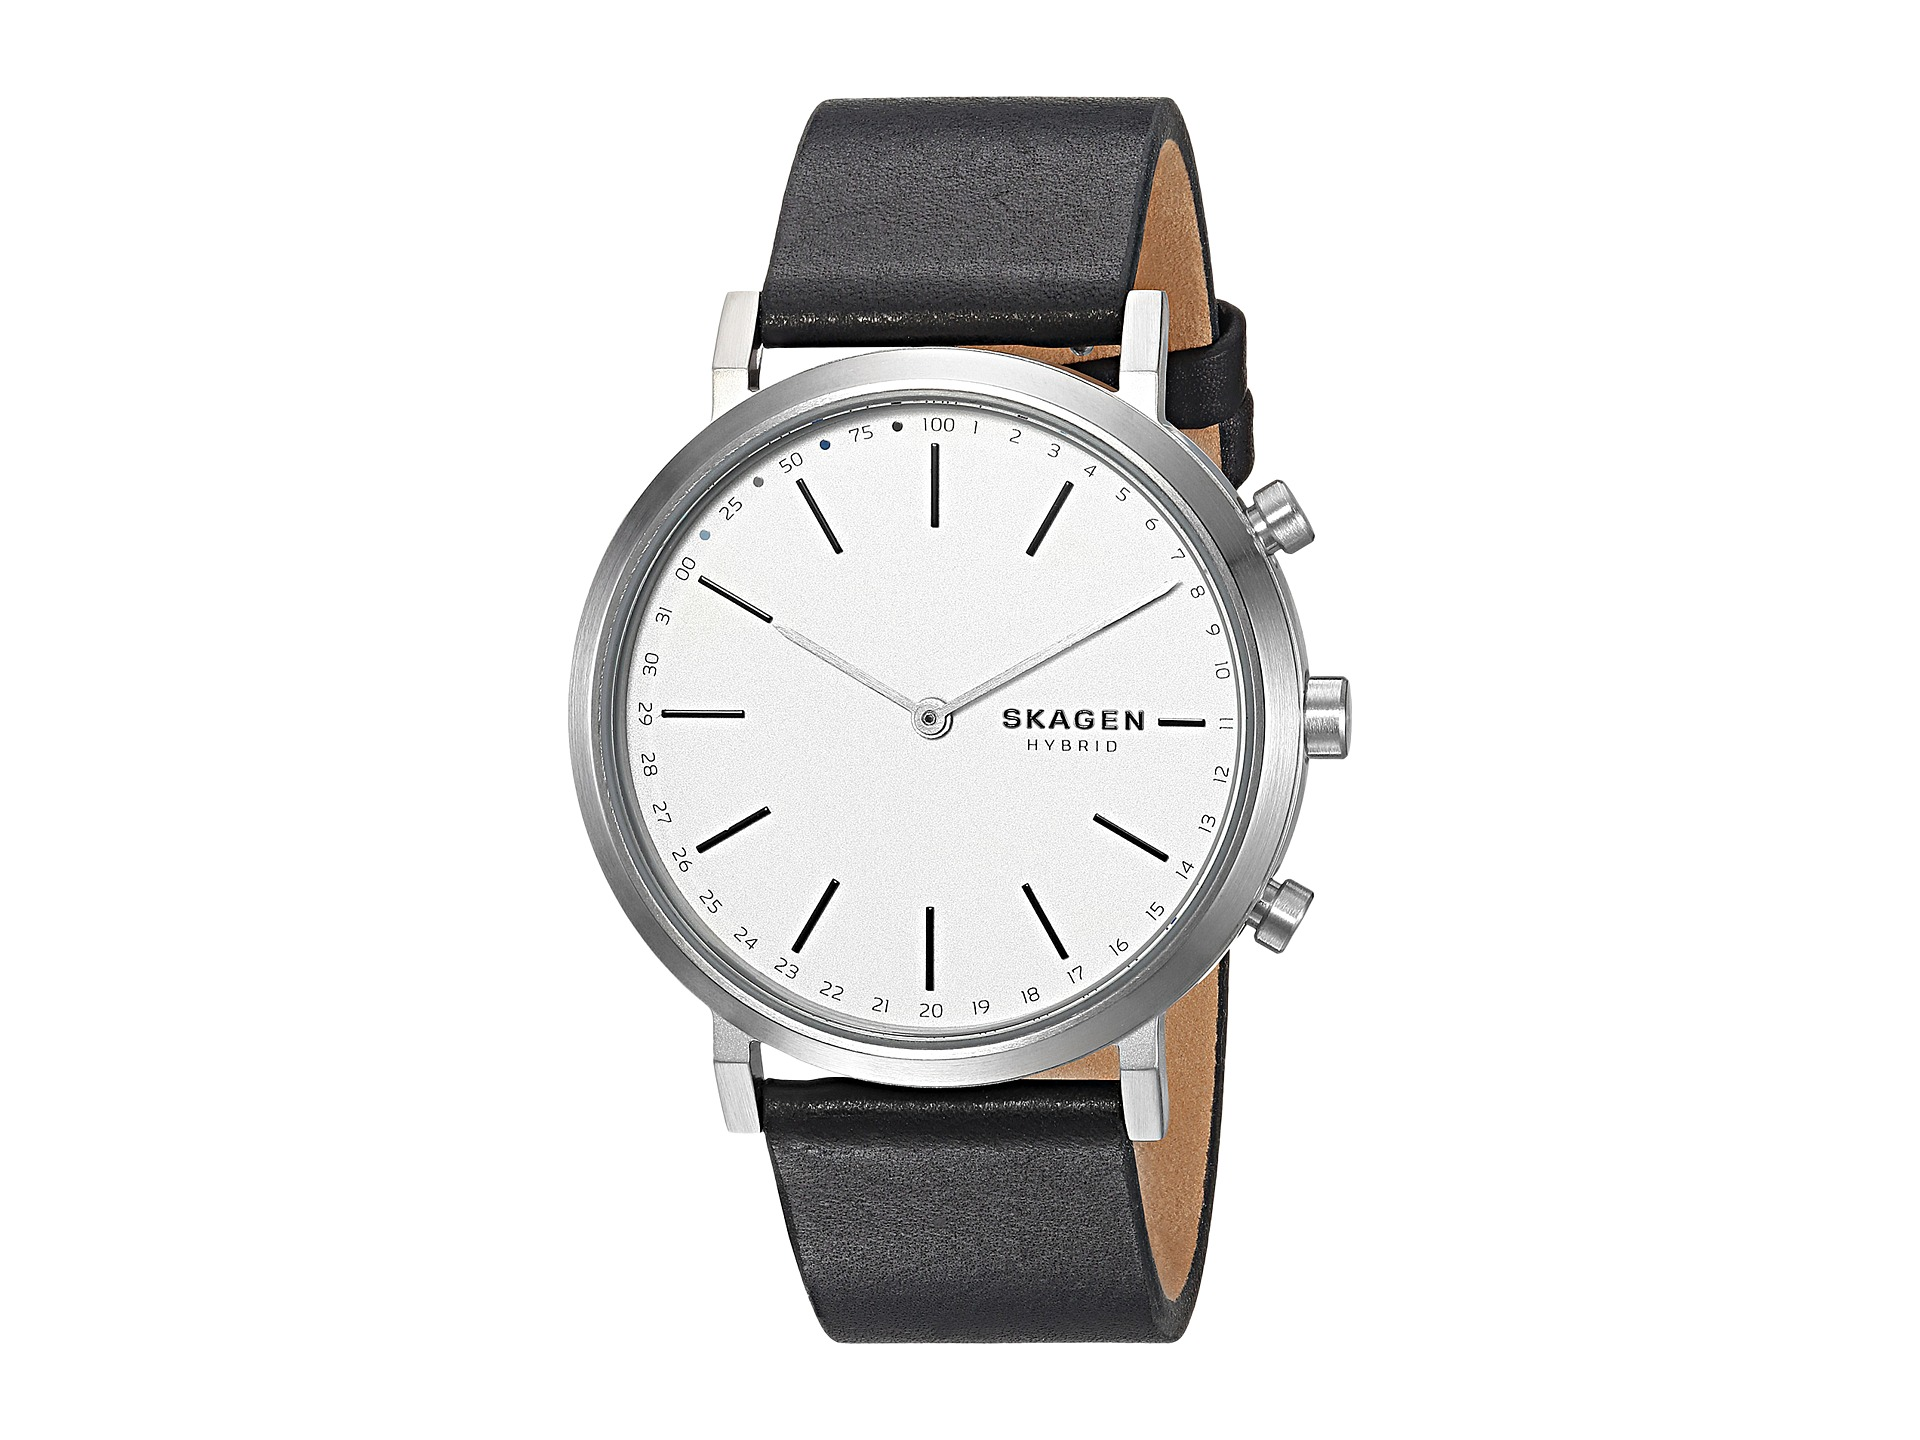 Skagen Hald Connected Hybrid Smartwatch